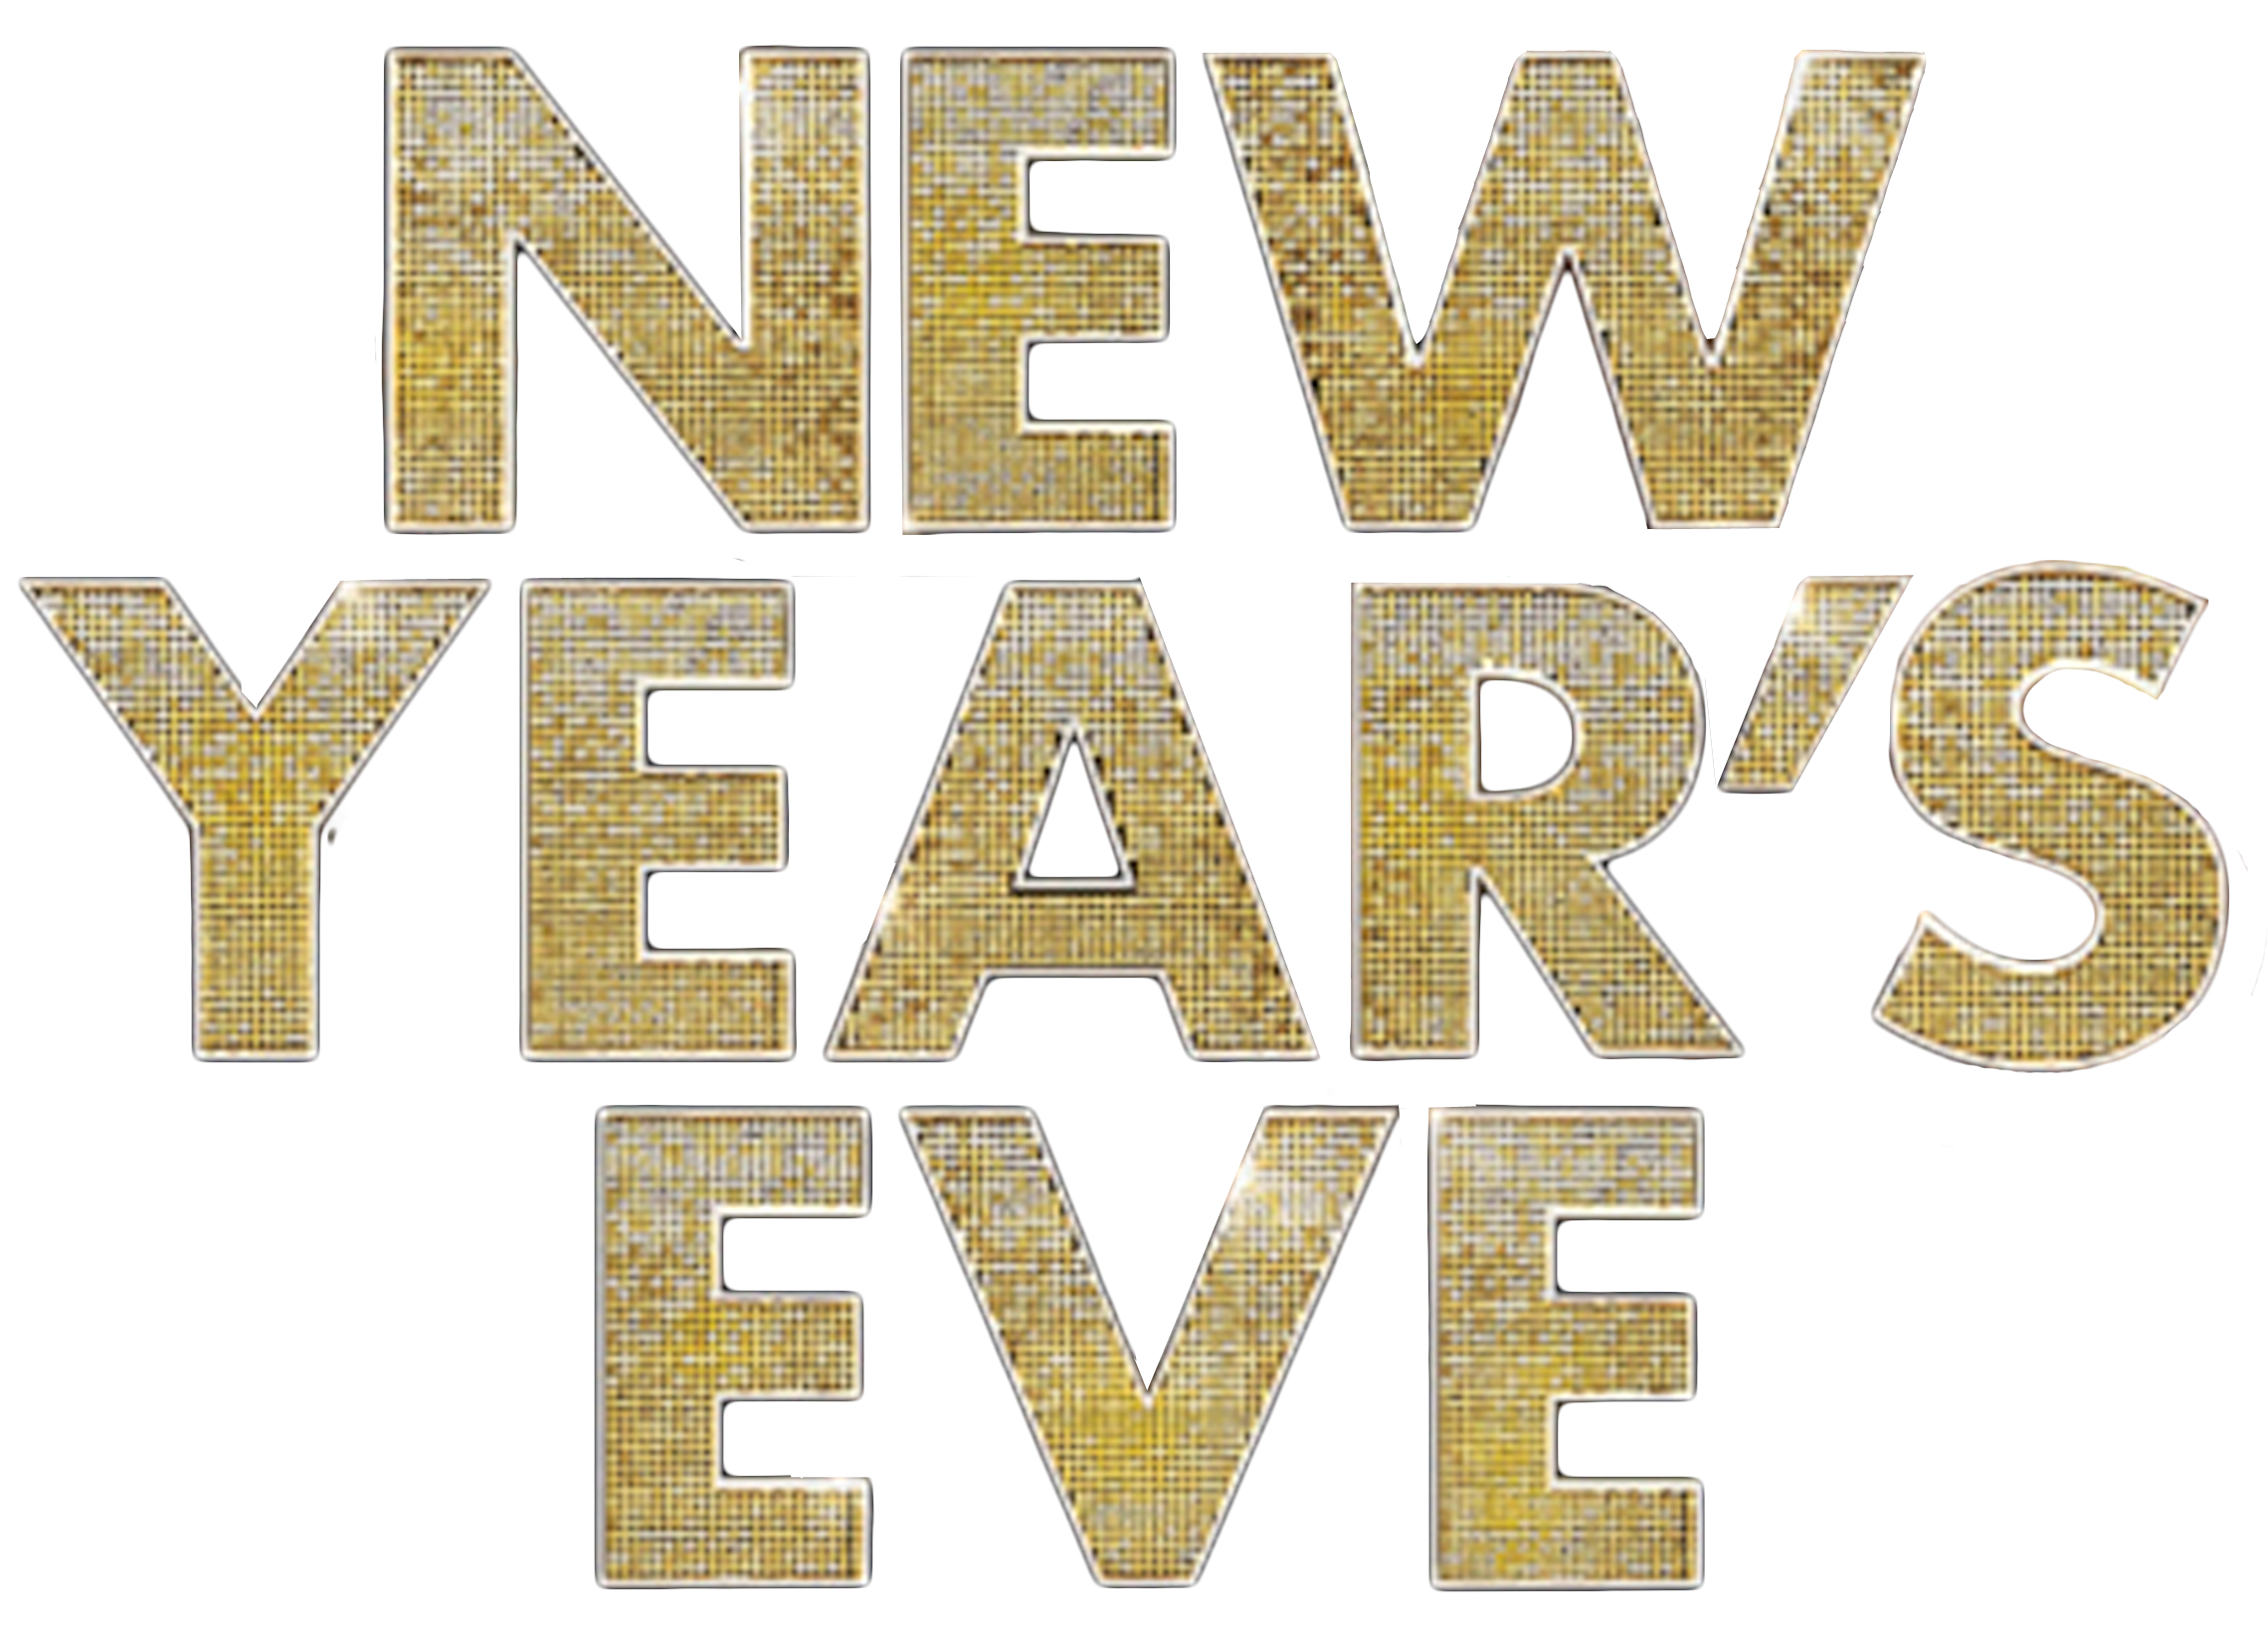 New years eve 2016 png. File logo wikimedia commons